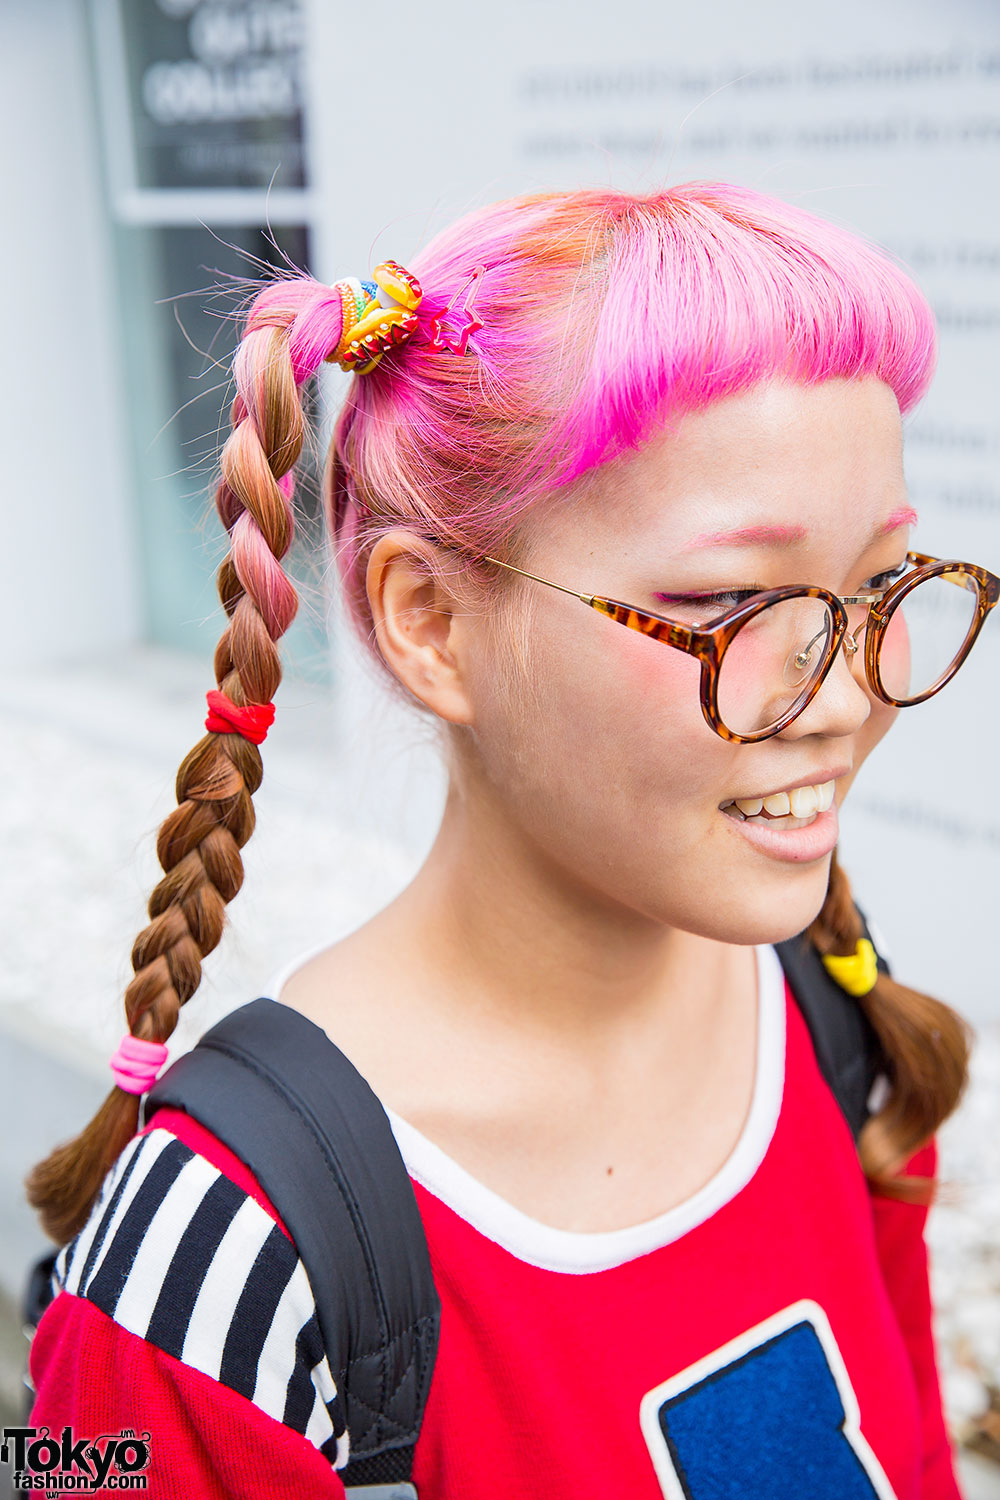 Pink Braids & Glasses w/ Aymmy Top, Plaid Skirt, Spinns